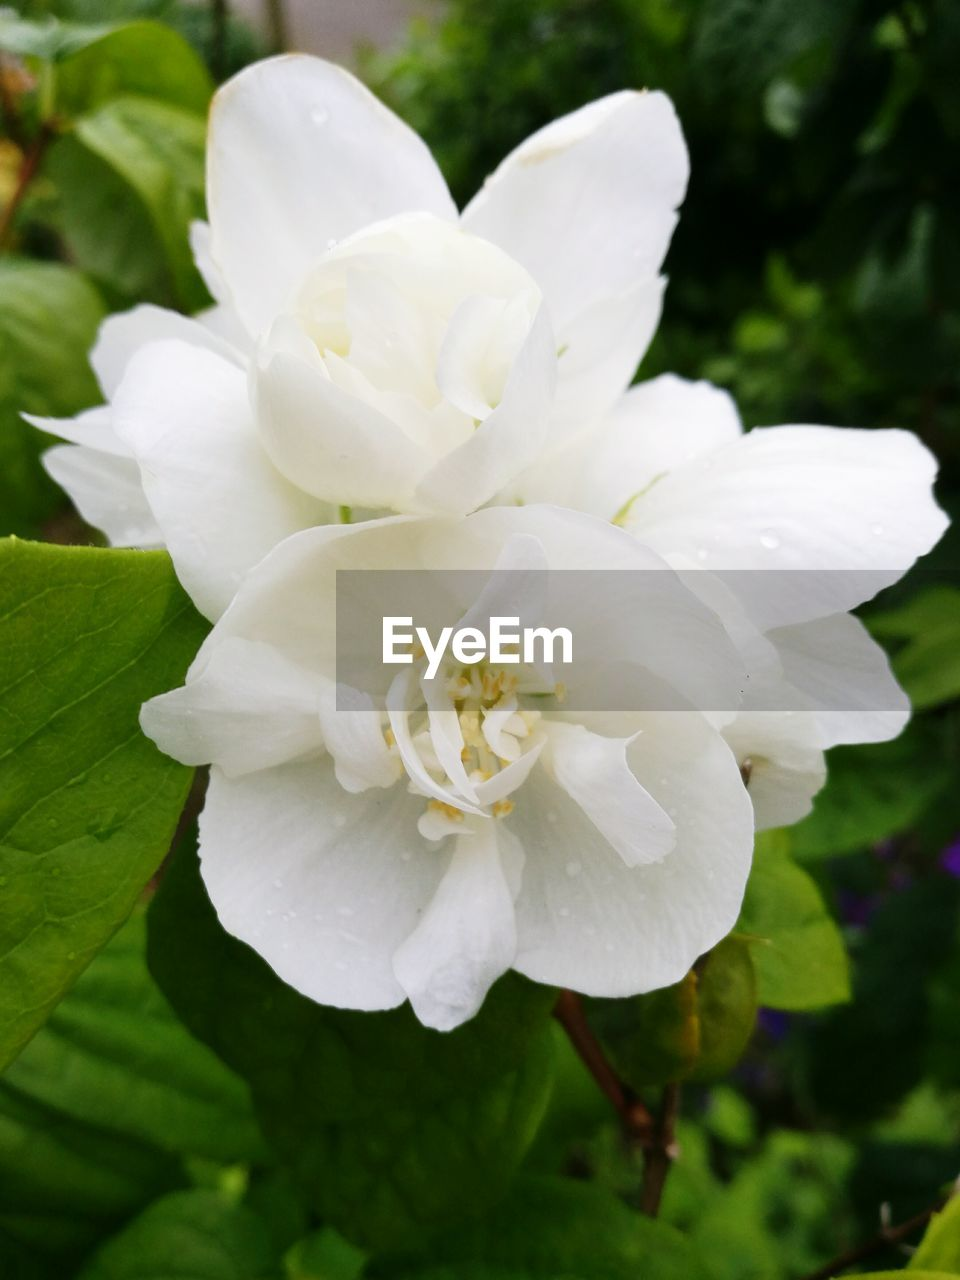 flower, white color, petal, nature, beauty in nature, fragility, growth, flower head, close-up, freshness, plant, day, drop, no people, outdoors, wild rose, blooming, water